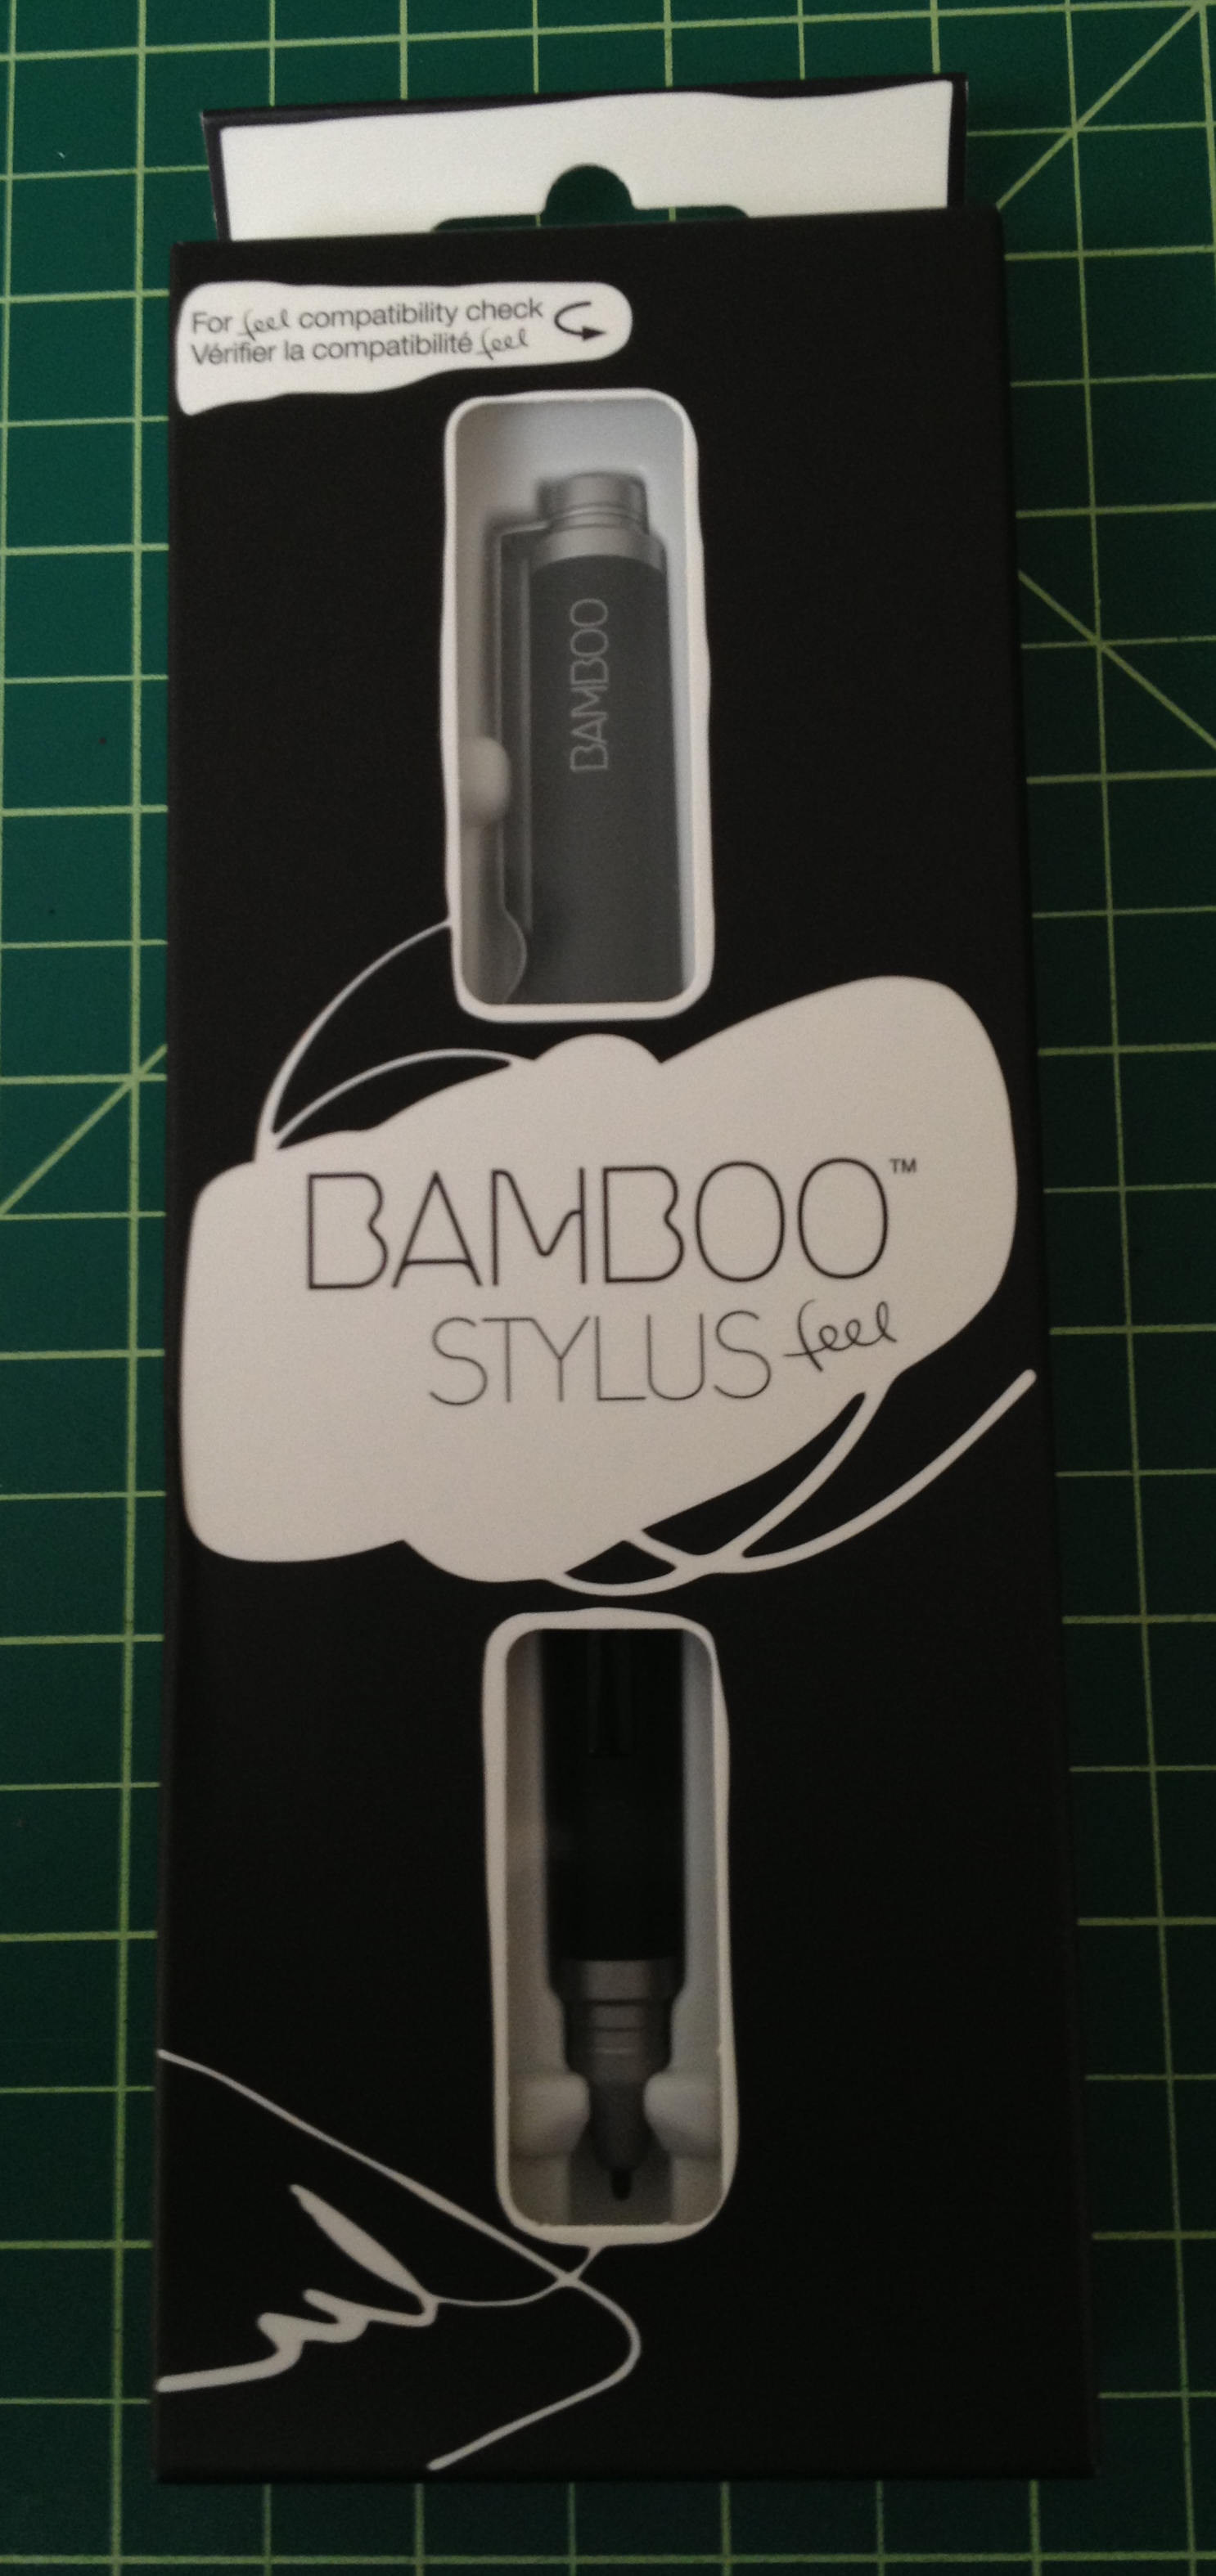 Wacom Bamboo Feel Stylus for Samsung Galaxy Note 10.1 and Windows 8 Tablets - Black (CS300UK)